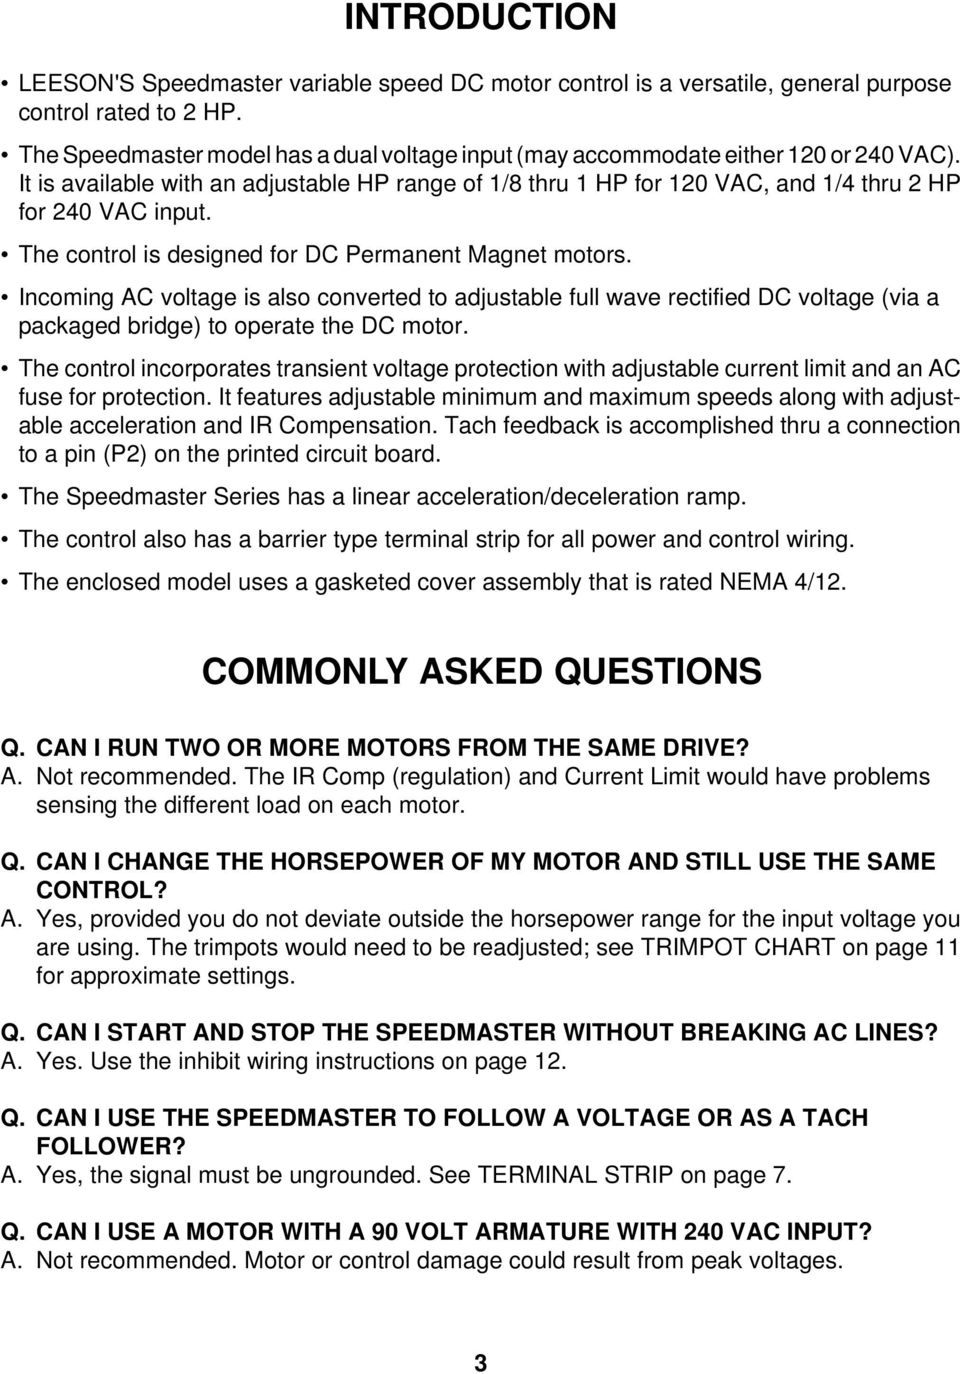 Leeson Electric Corporation Grafton Wi Usa Telephone 262 Fax Motor Wiring Diagram General On The Control Is Designed For Dc Permanent Magnet Motors Incoming Ac Voltage Also Converted